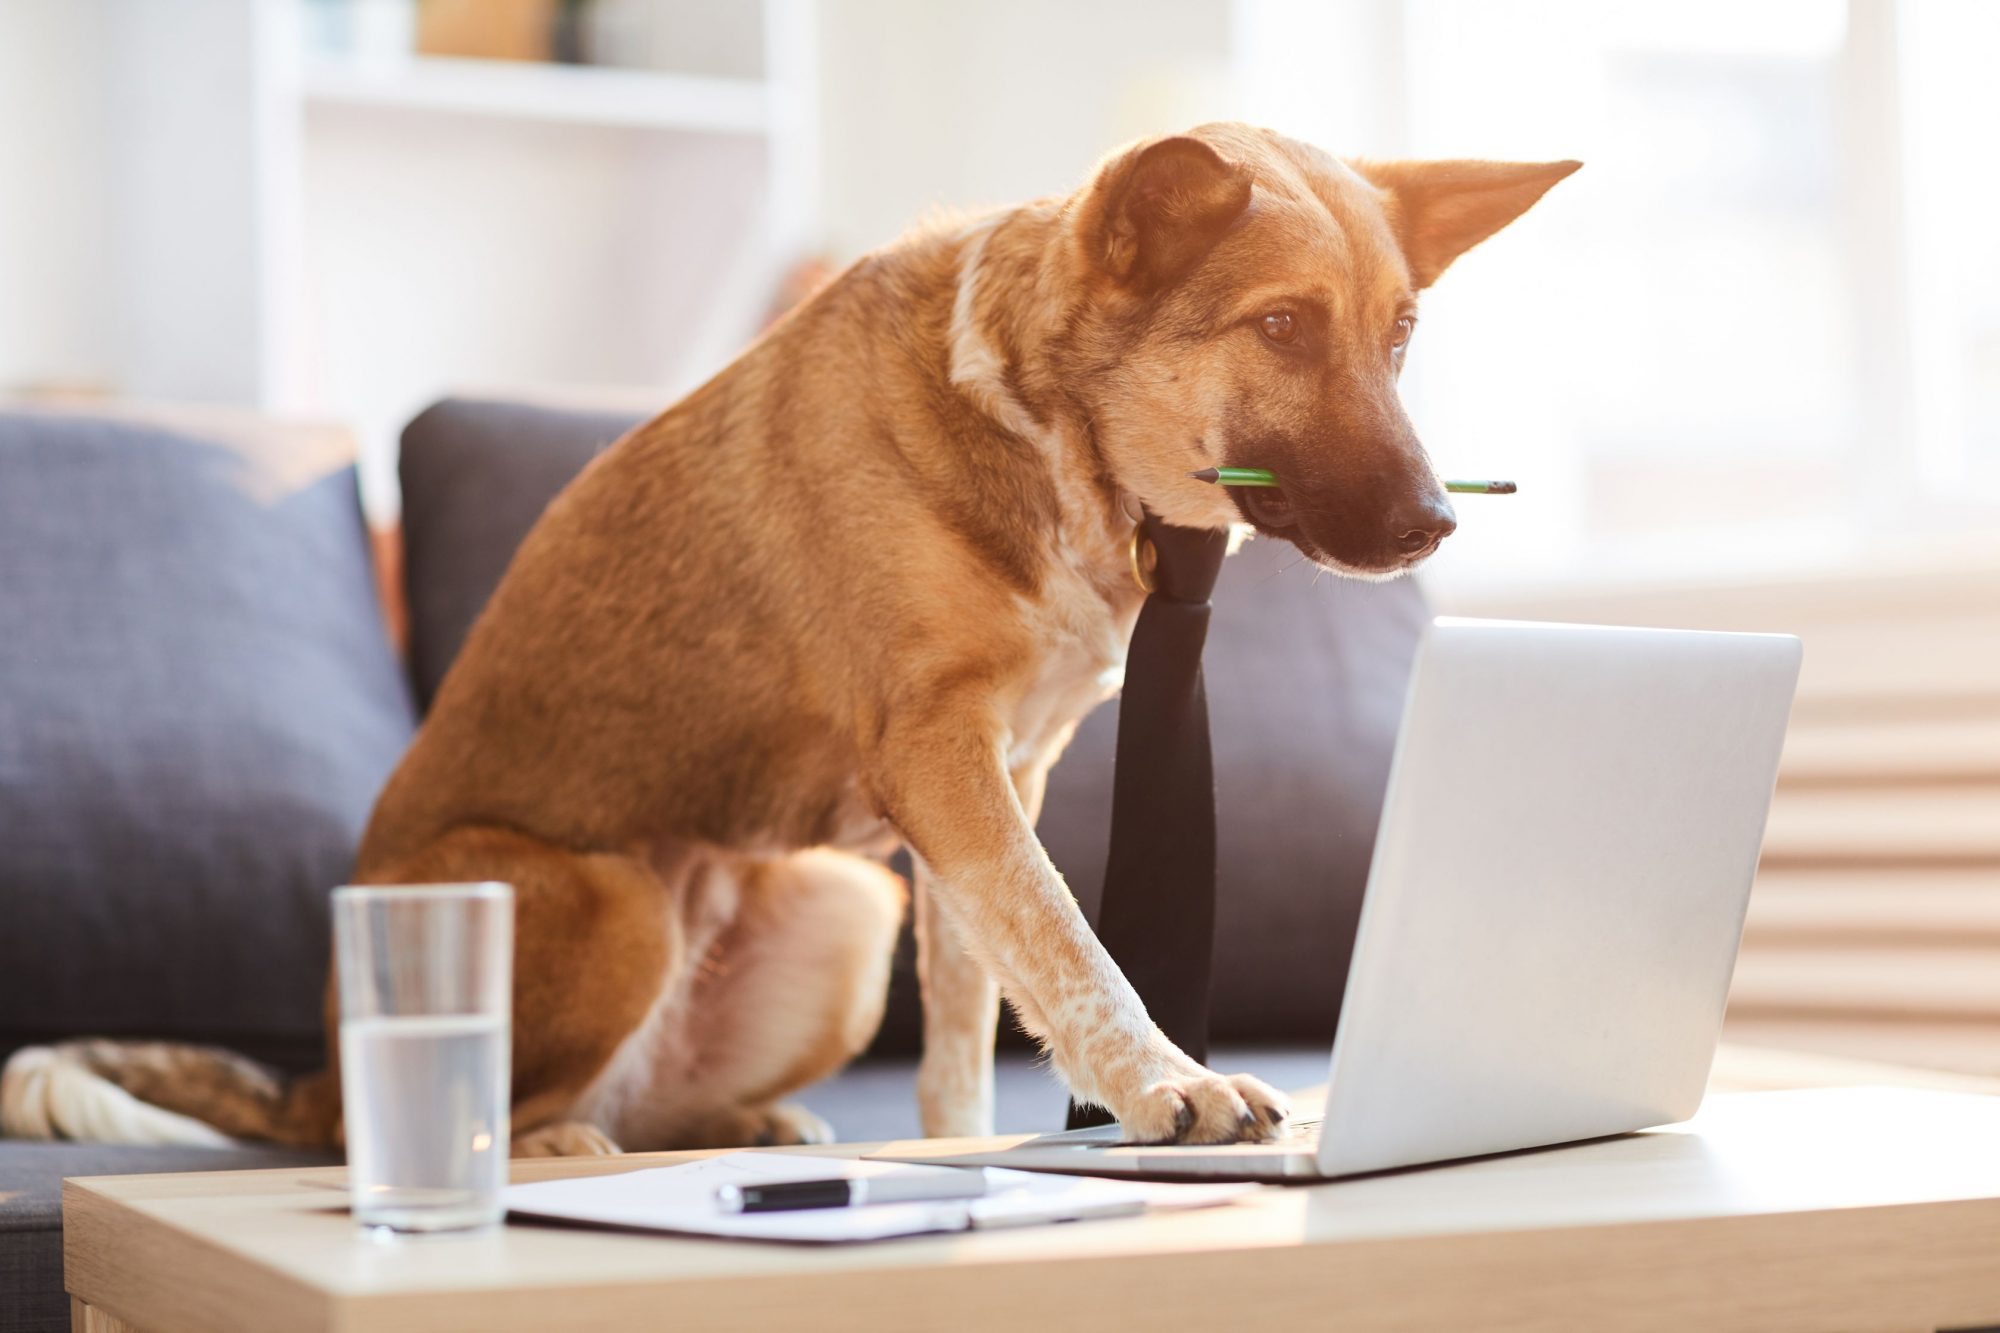 A dog in a tie presses on a laptop.